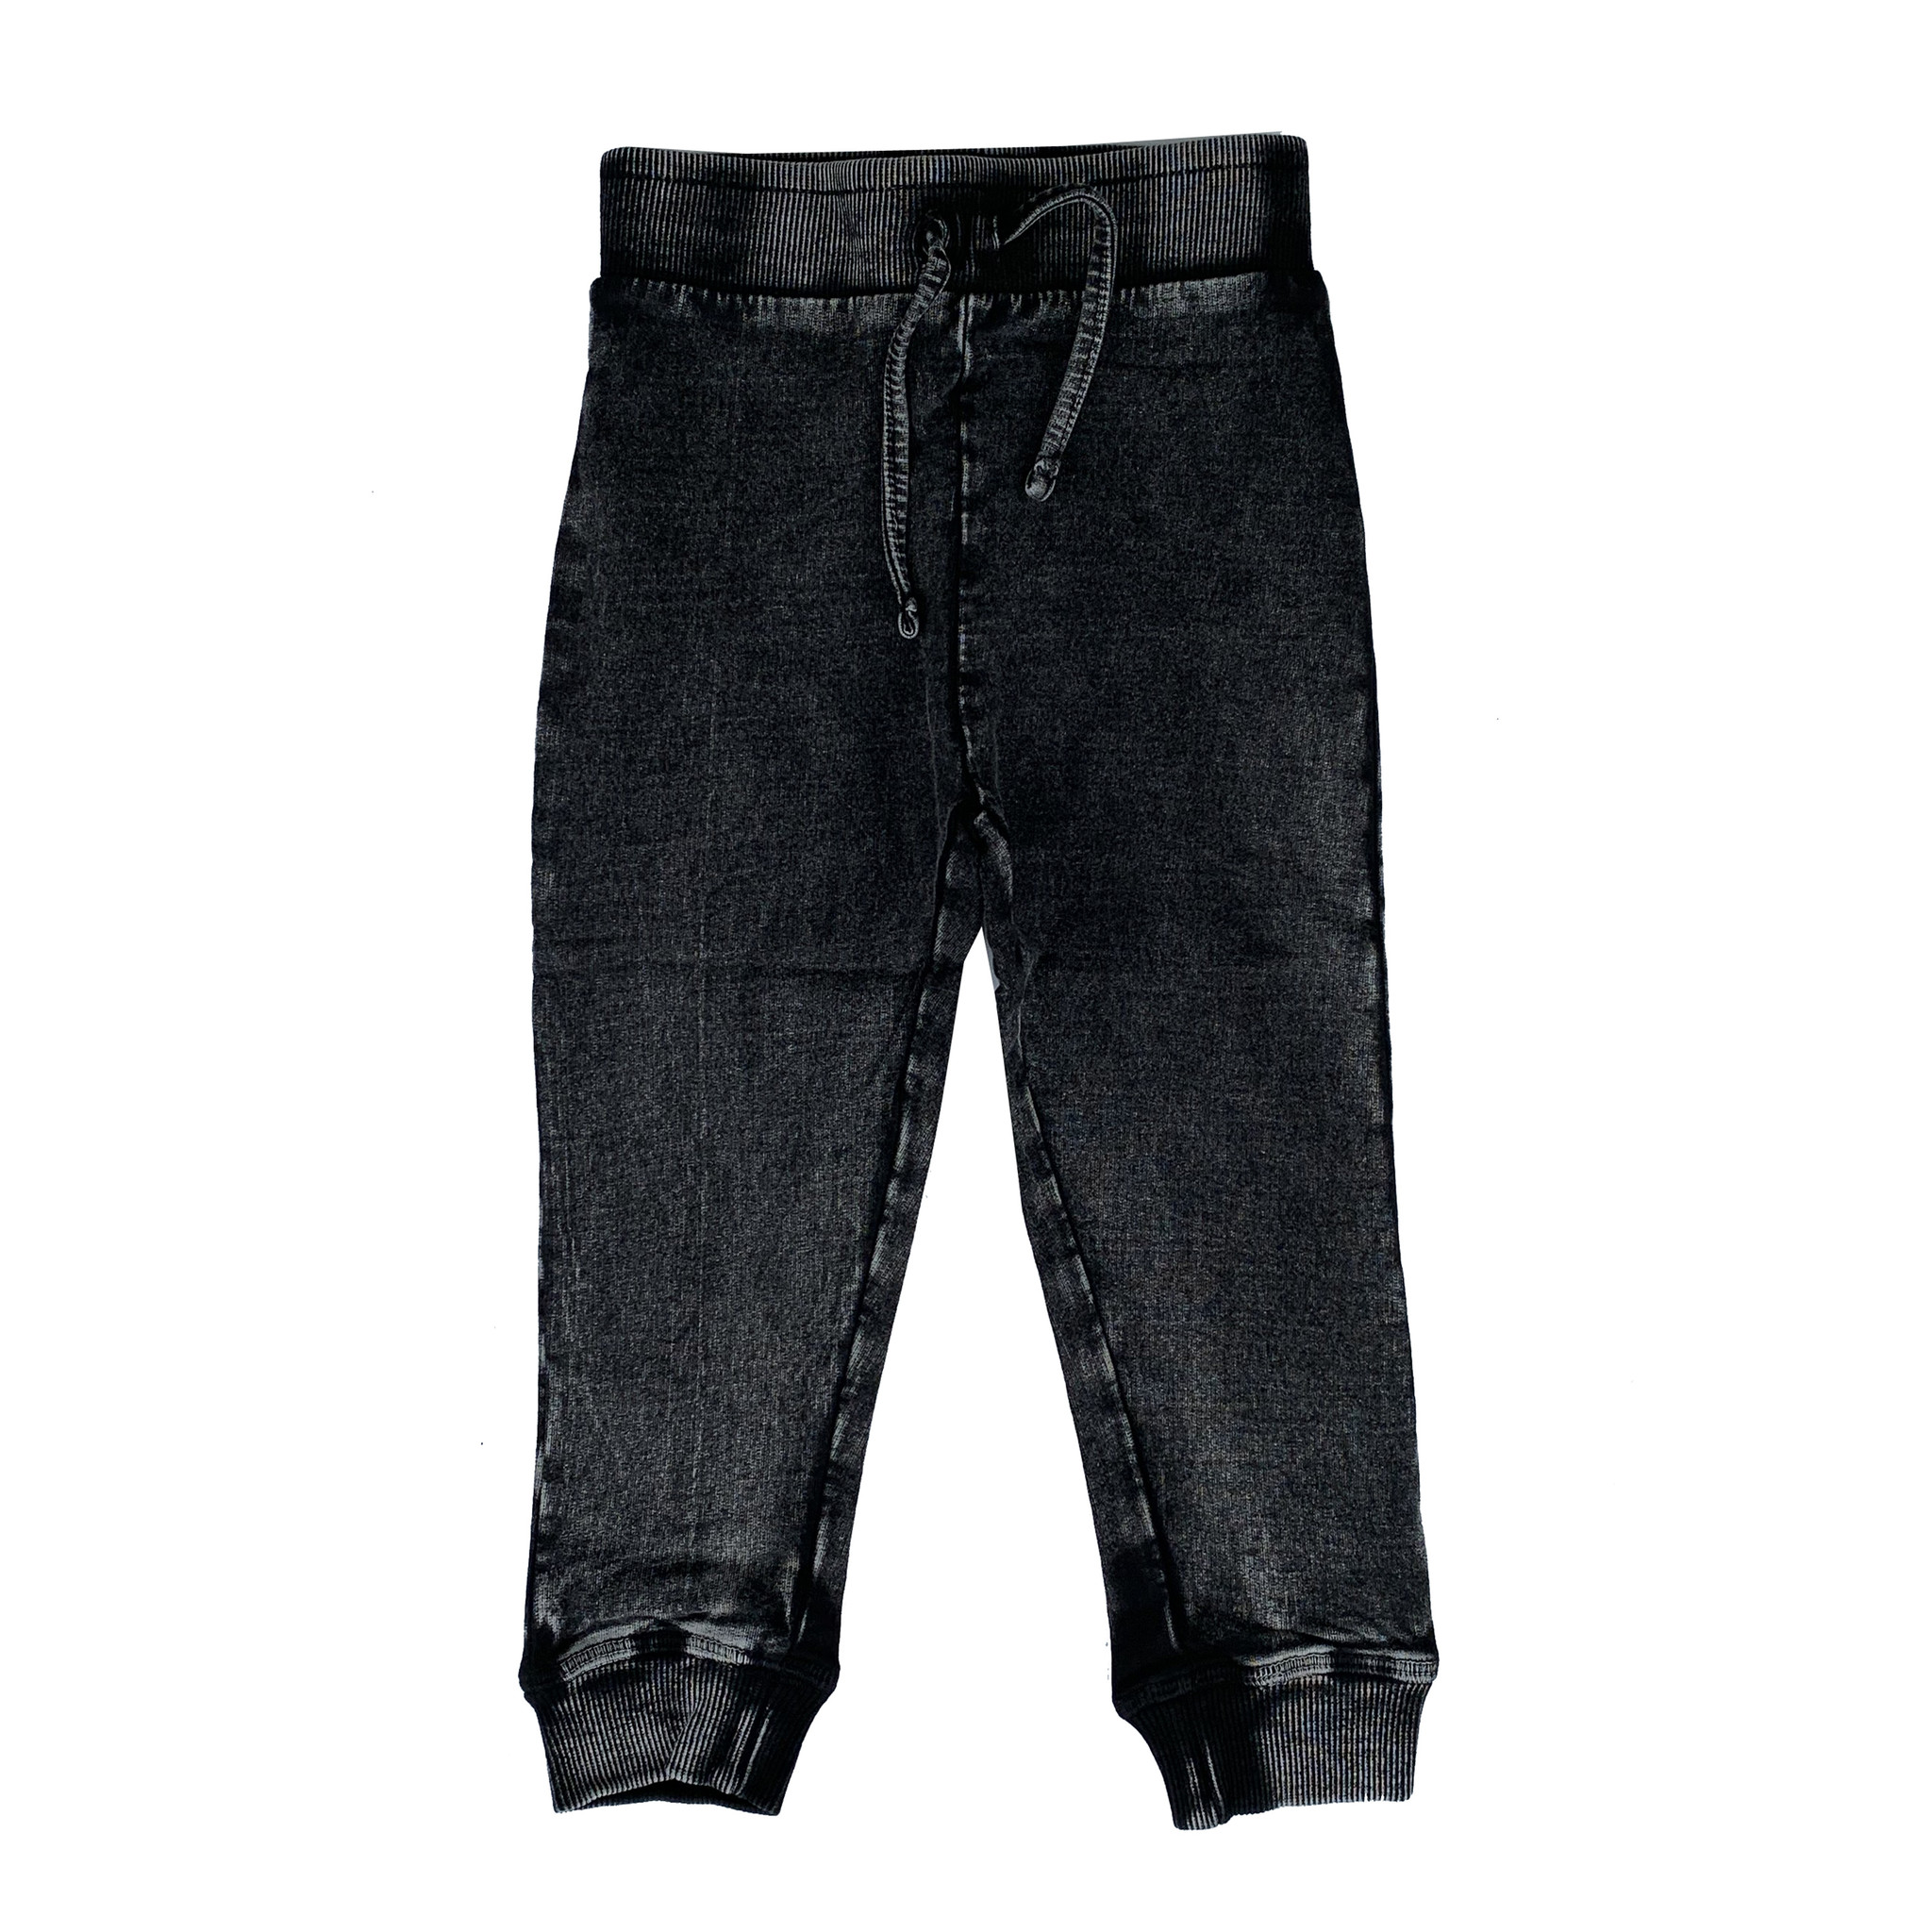 Mish Black Distressed Denim Joggers